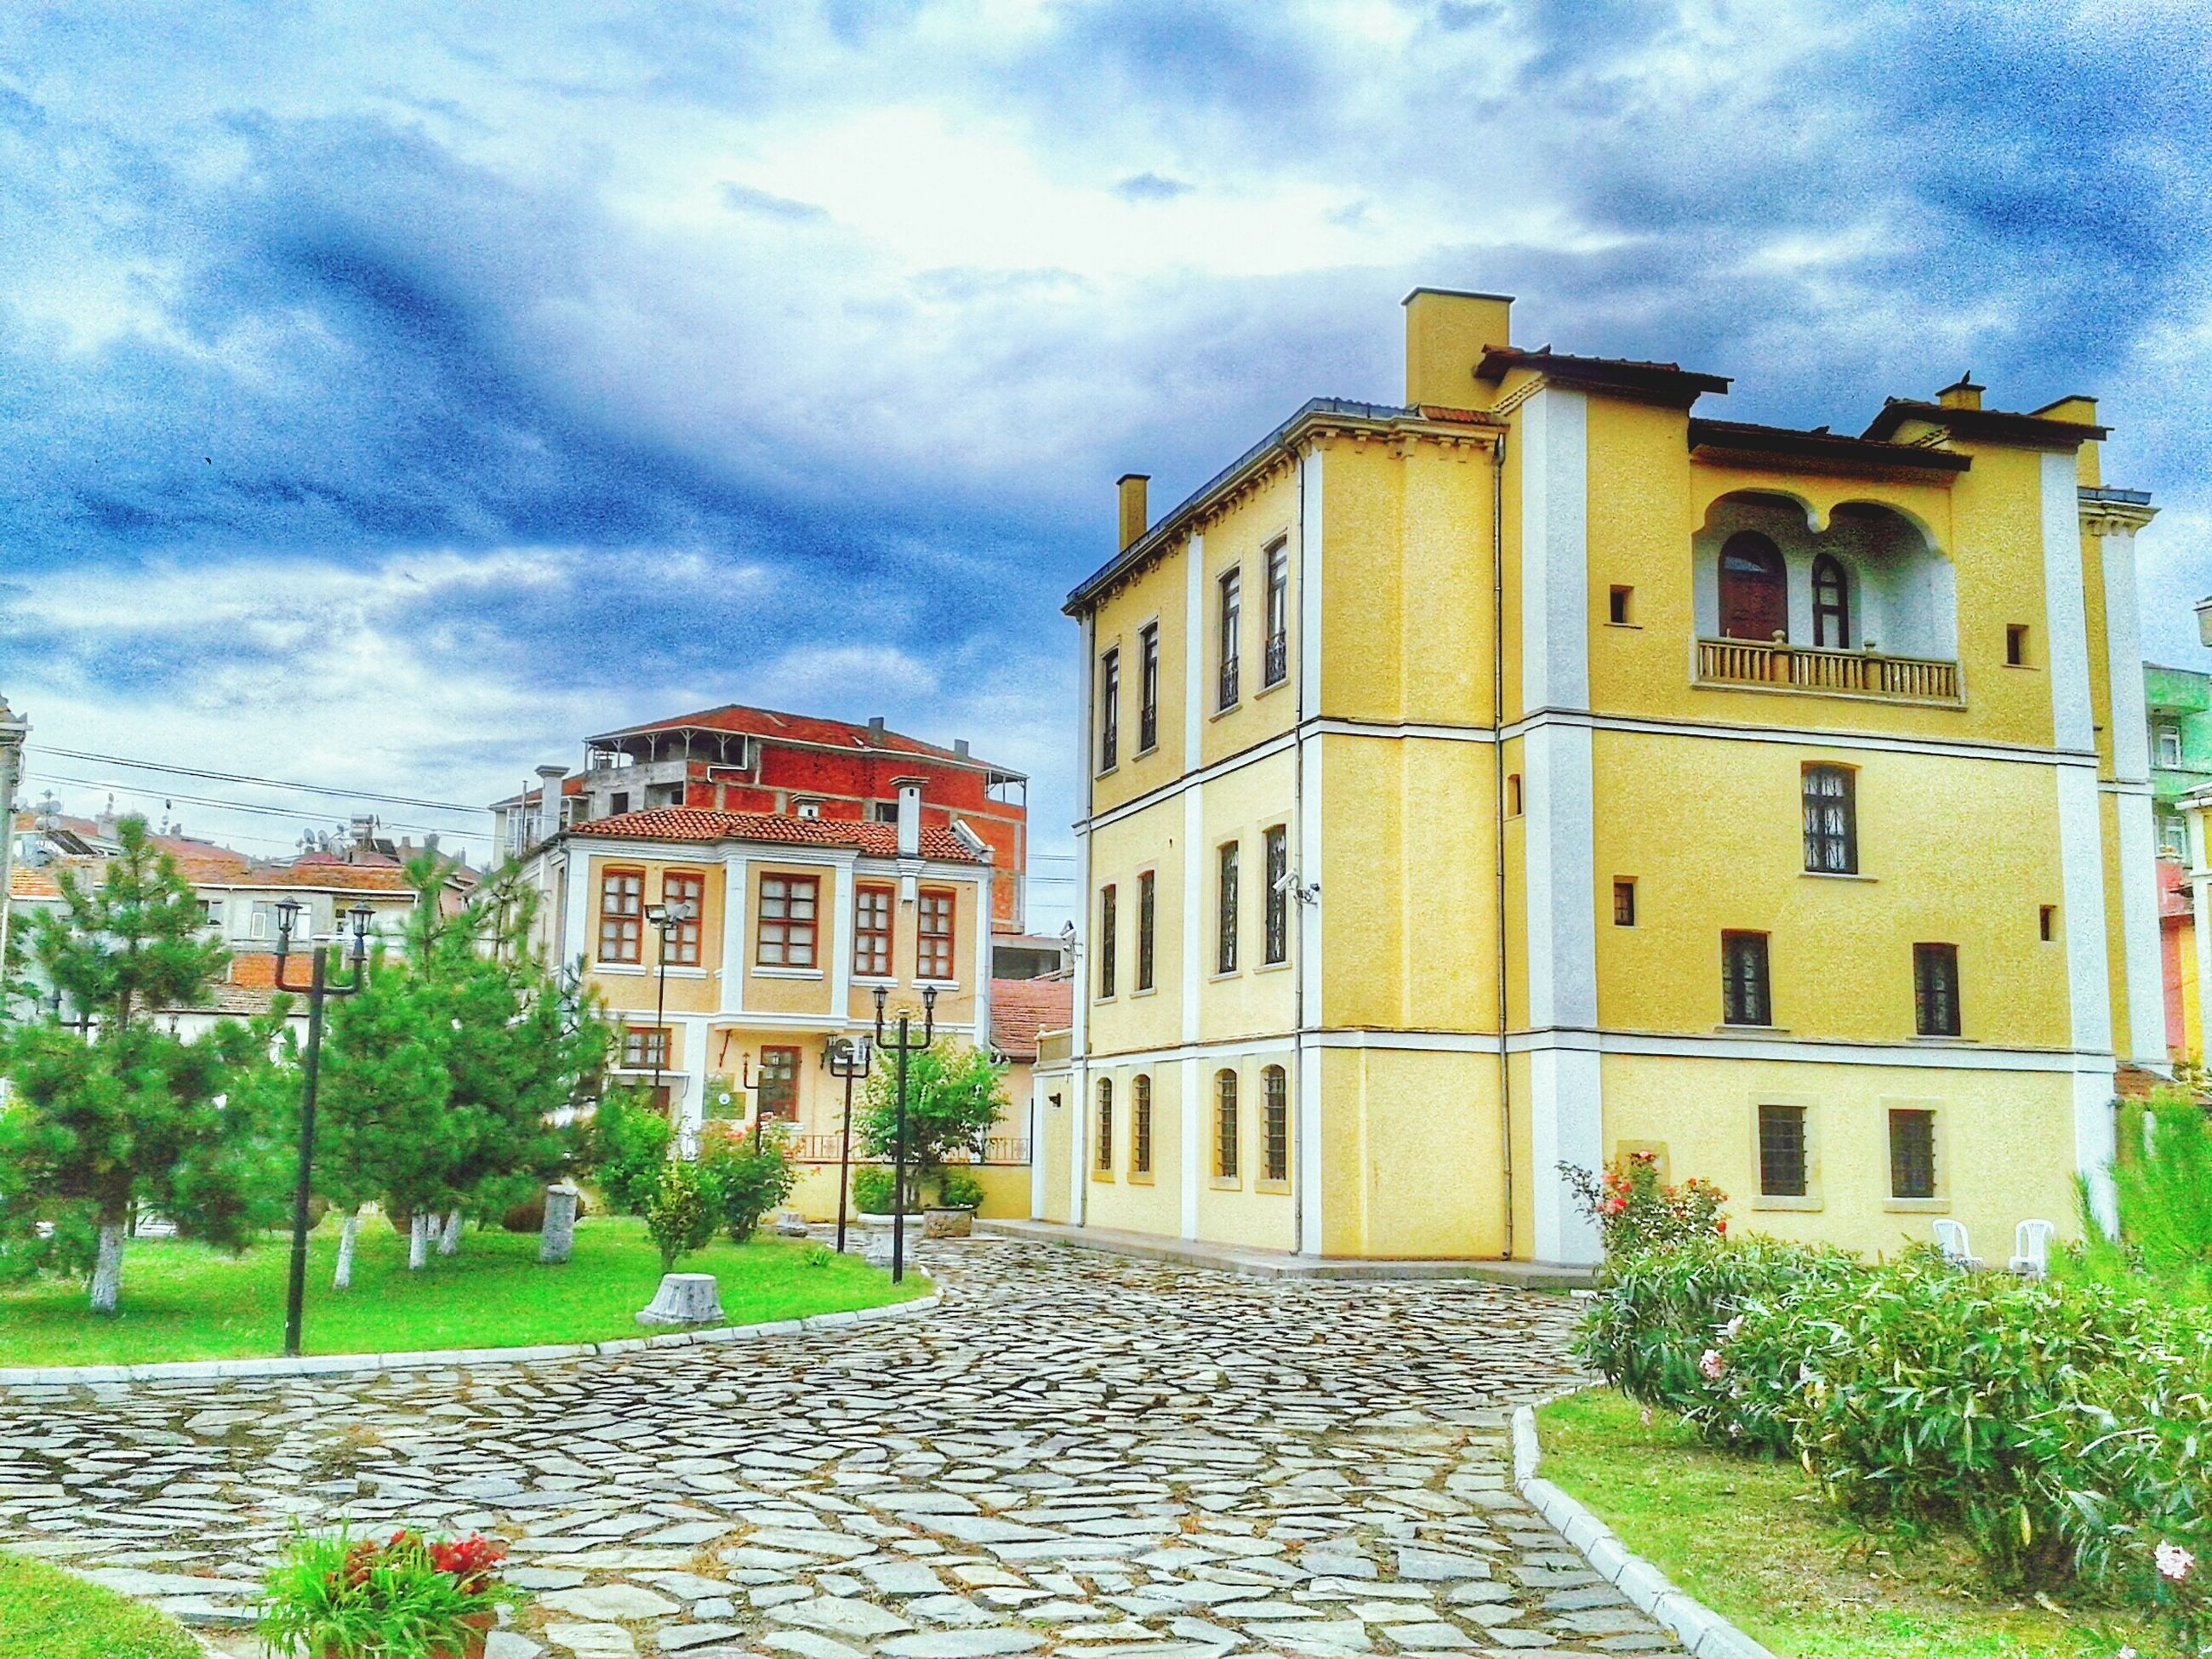 architecture, building exterior, built structure, sky, cloud - sky, cloudy, the way forward, house, residential structure, residential building, cloud, street, cobblestone, walkway, footpath, building, facade, window, pathway, day